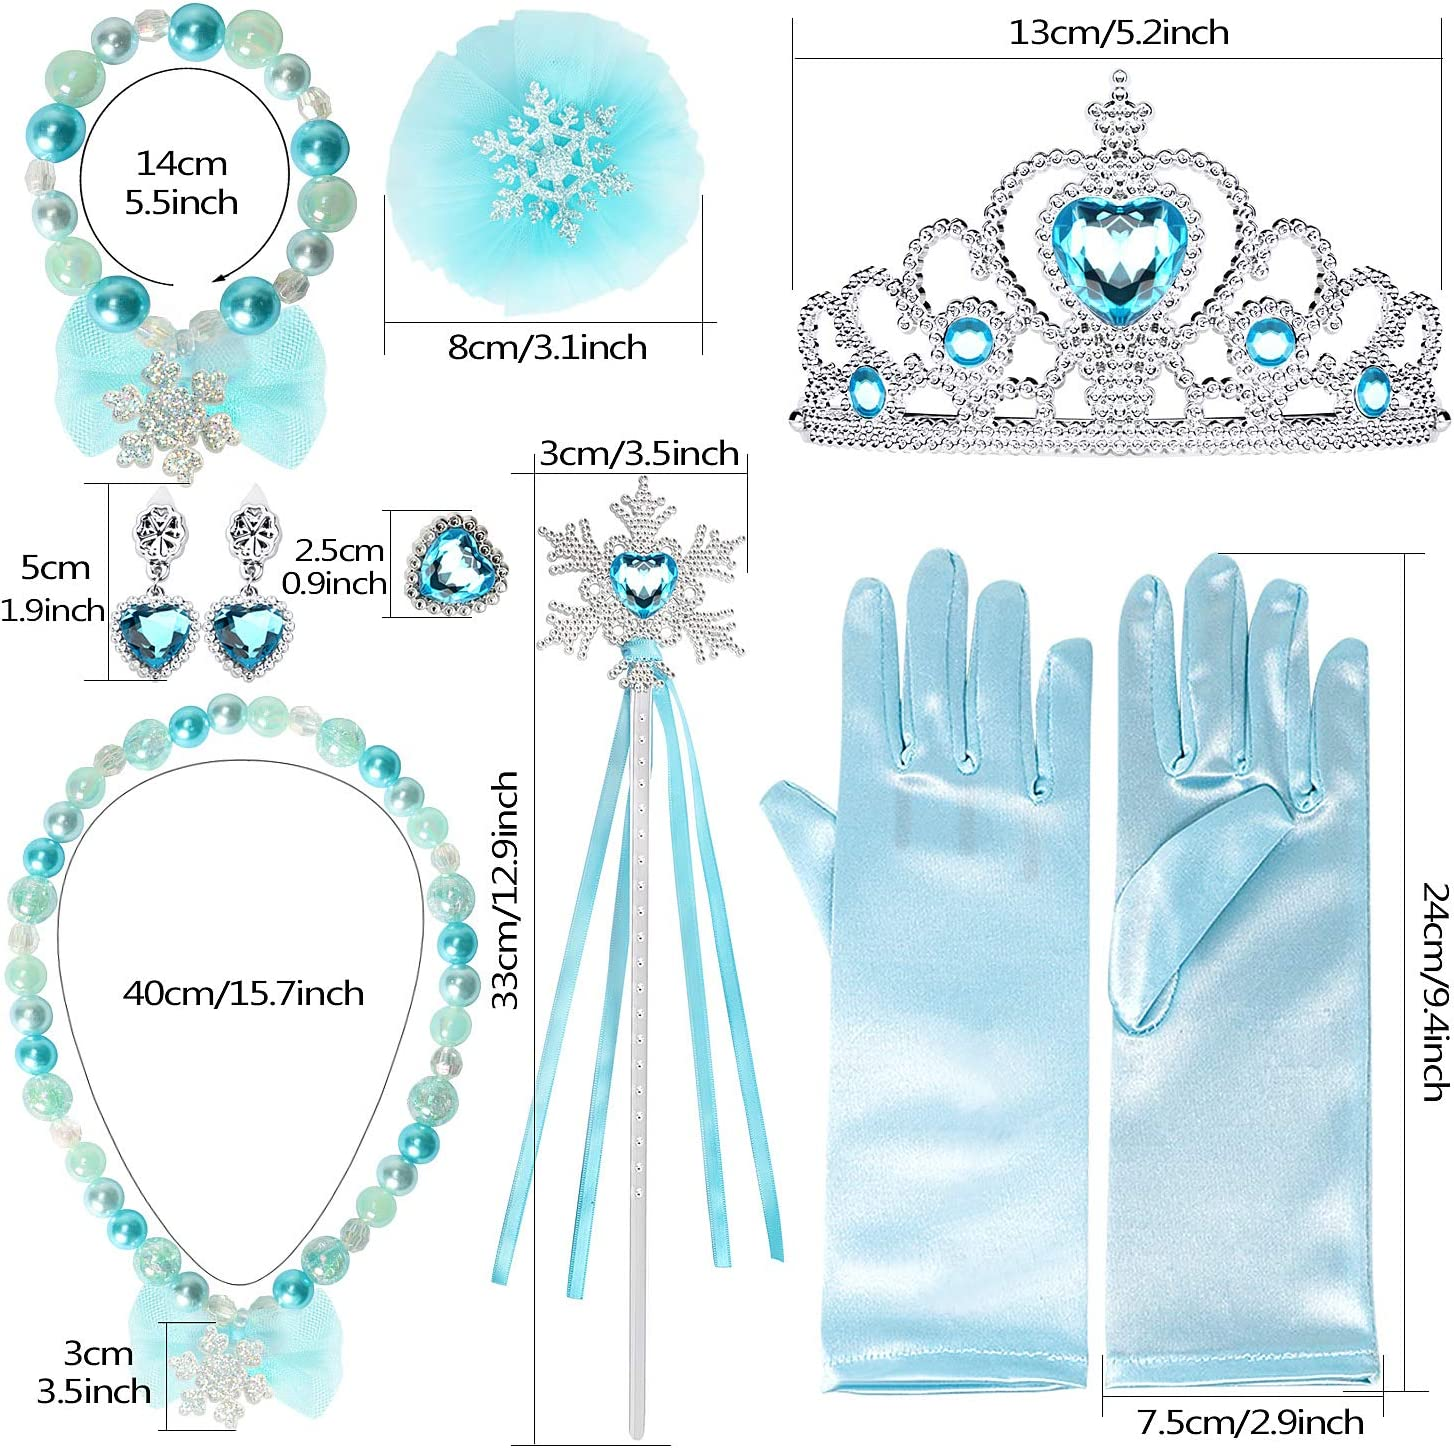 Joinfun Princess Dress up Accessories 9 Pieces Set Tiara Crown Wig Wand Gloves Mask Kits For Girls Birthday Gift Party Supplies Halloween Costume for Kids Aurora